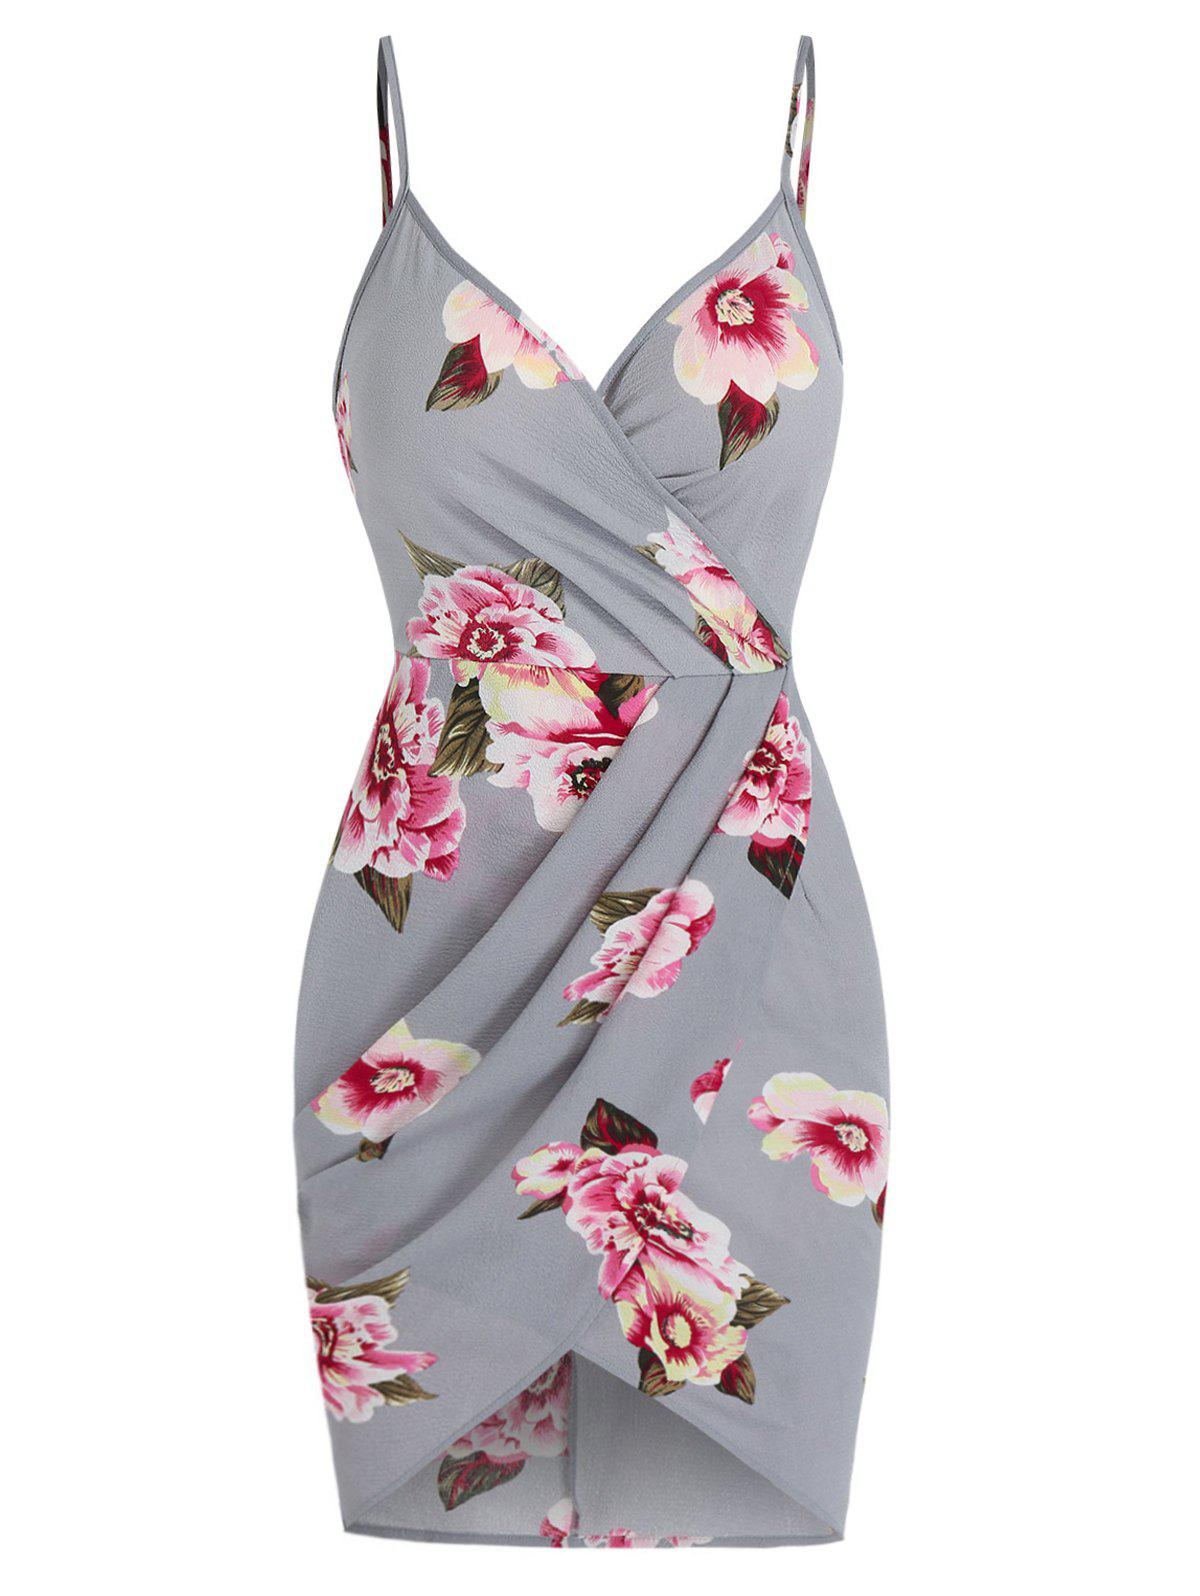 Chic Flower Print Spaghetti Strap Ruched Tulip Dress